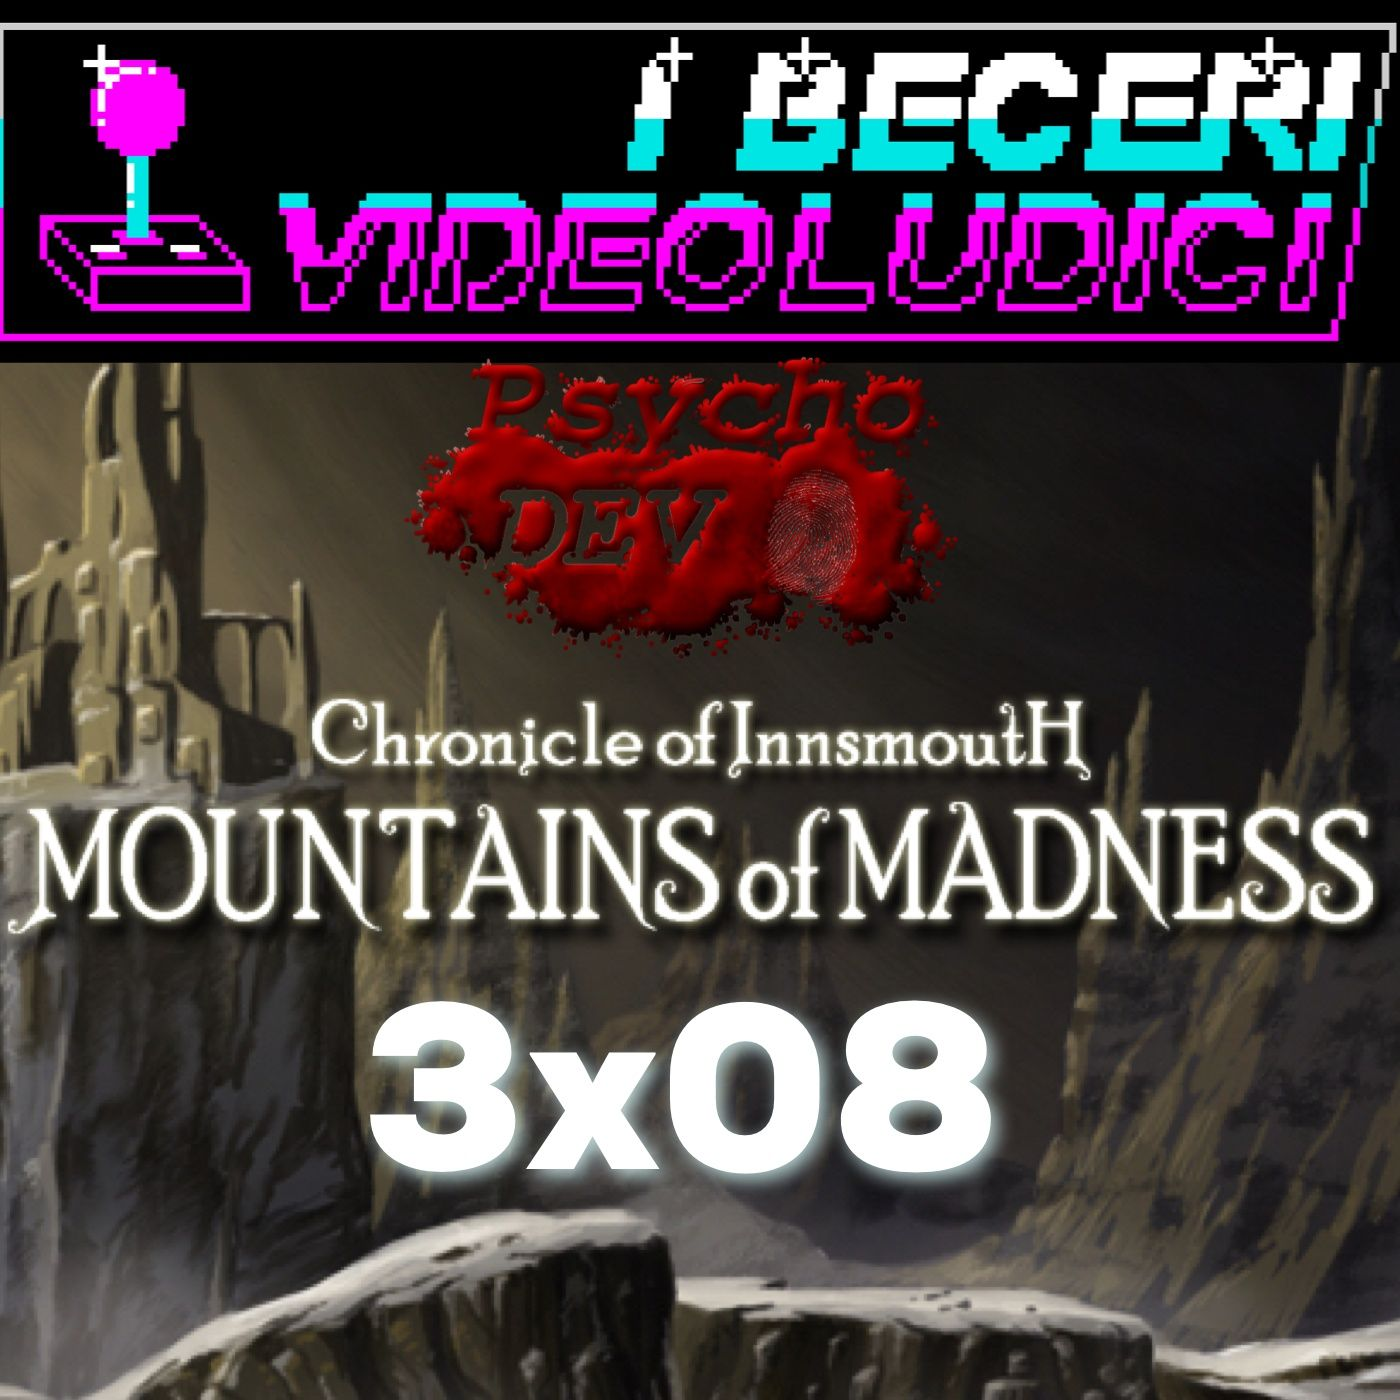 3x08 - Chronicle of Innsmouth: Mountains of Madness